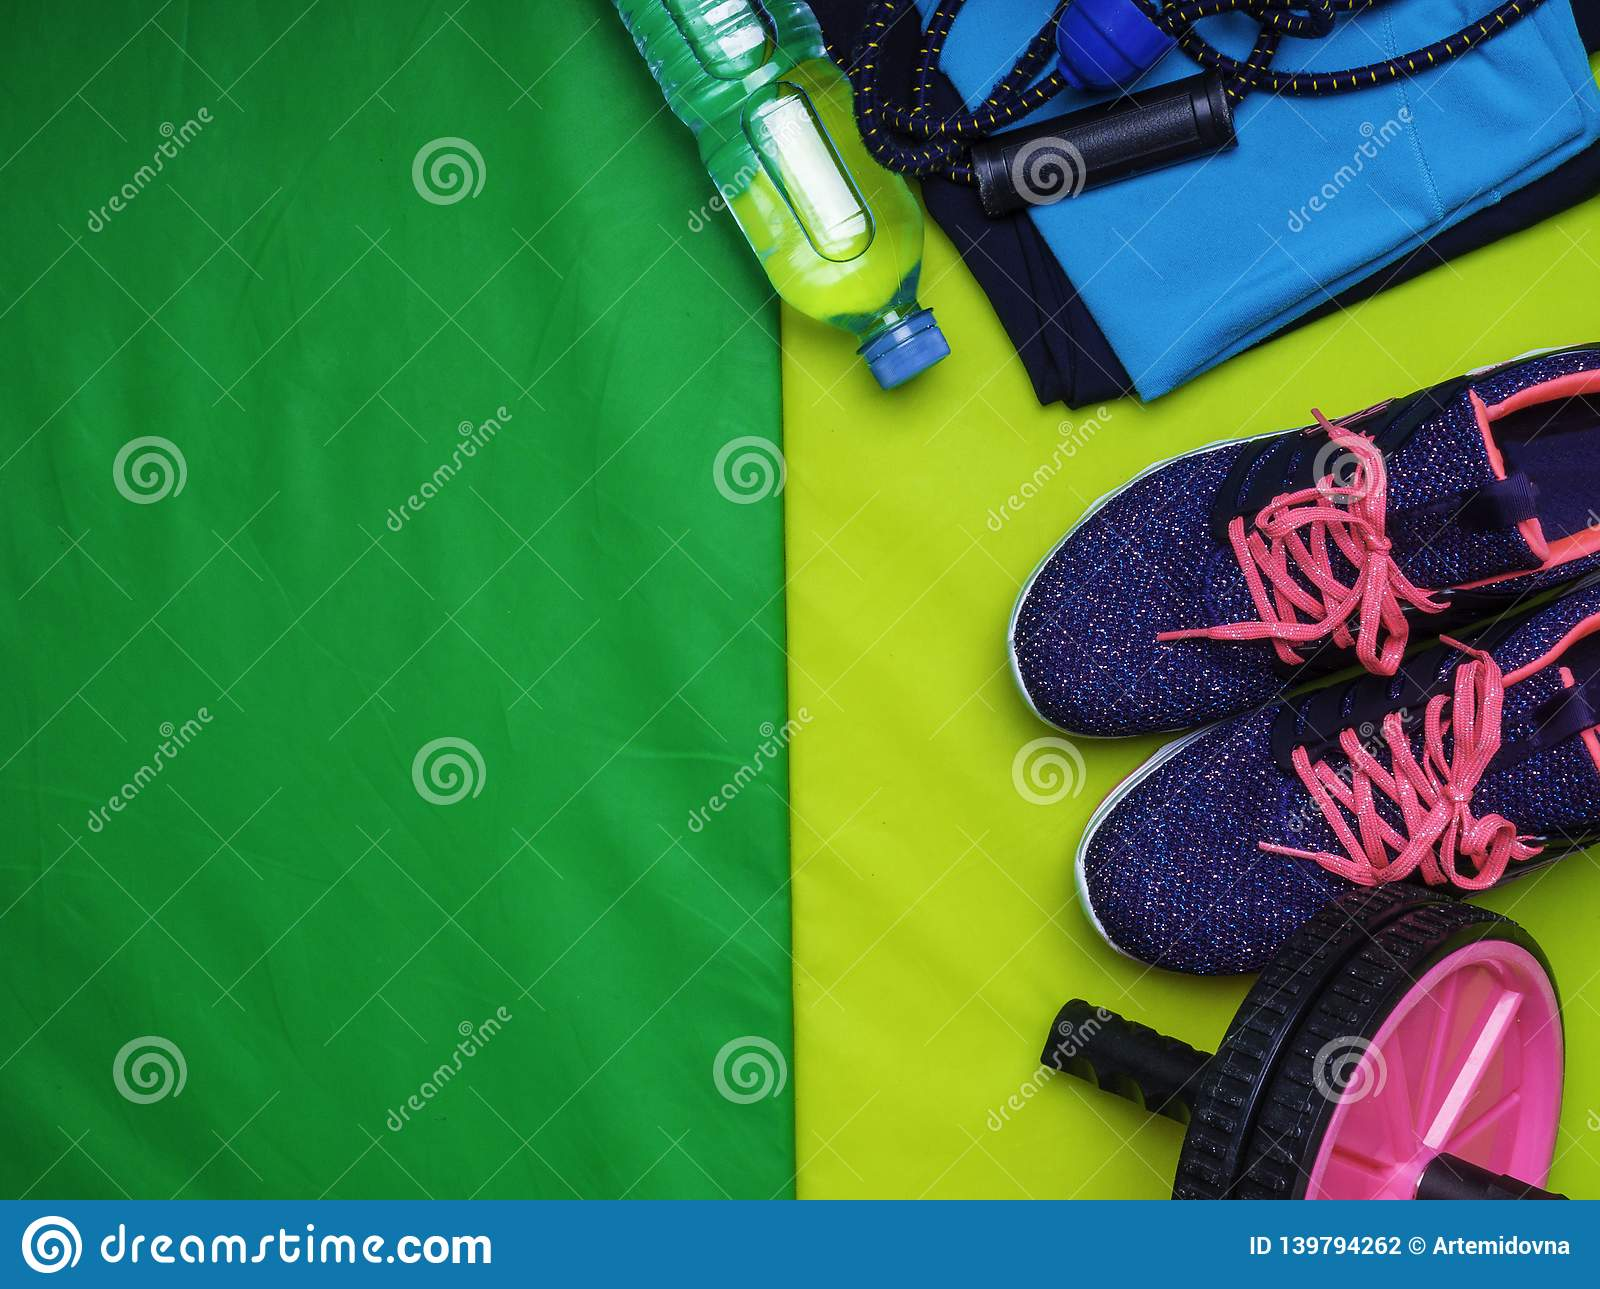 1322c154b95c8 Healthy lifestyle background. Green mat, sport shoes, bottle of water,  expander, the press wheel Concept healthy and sport life.